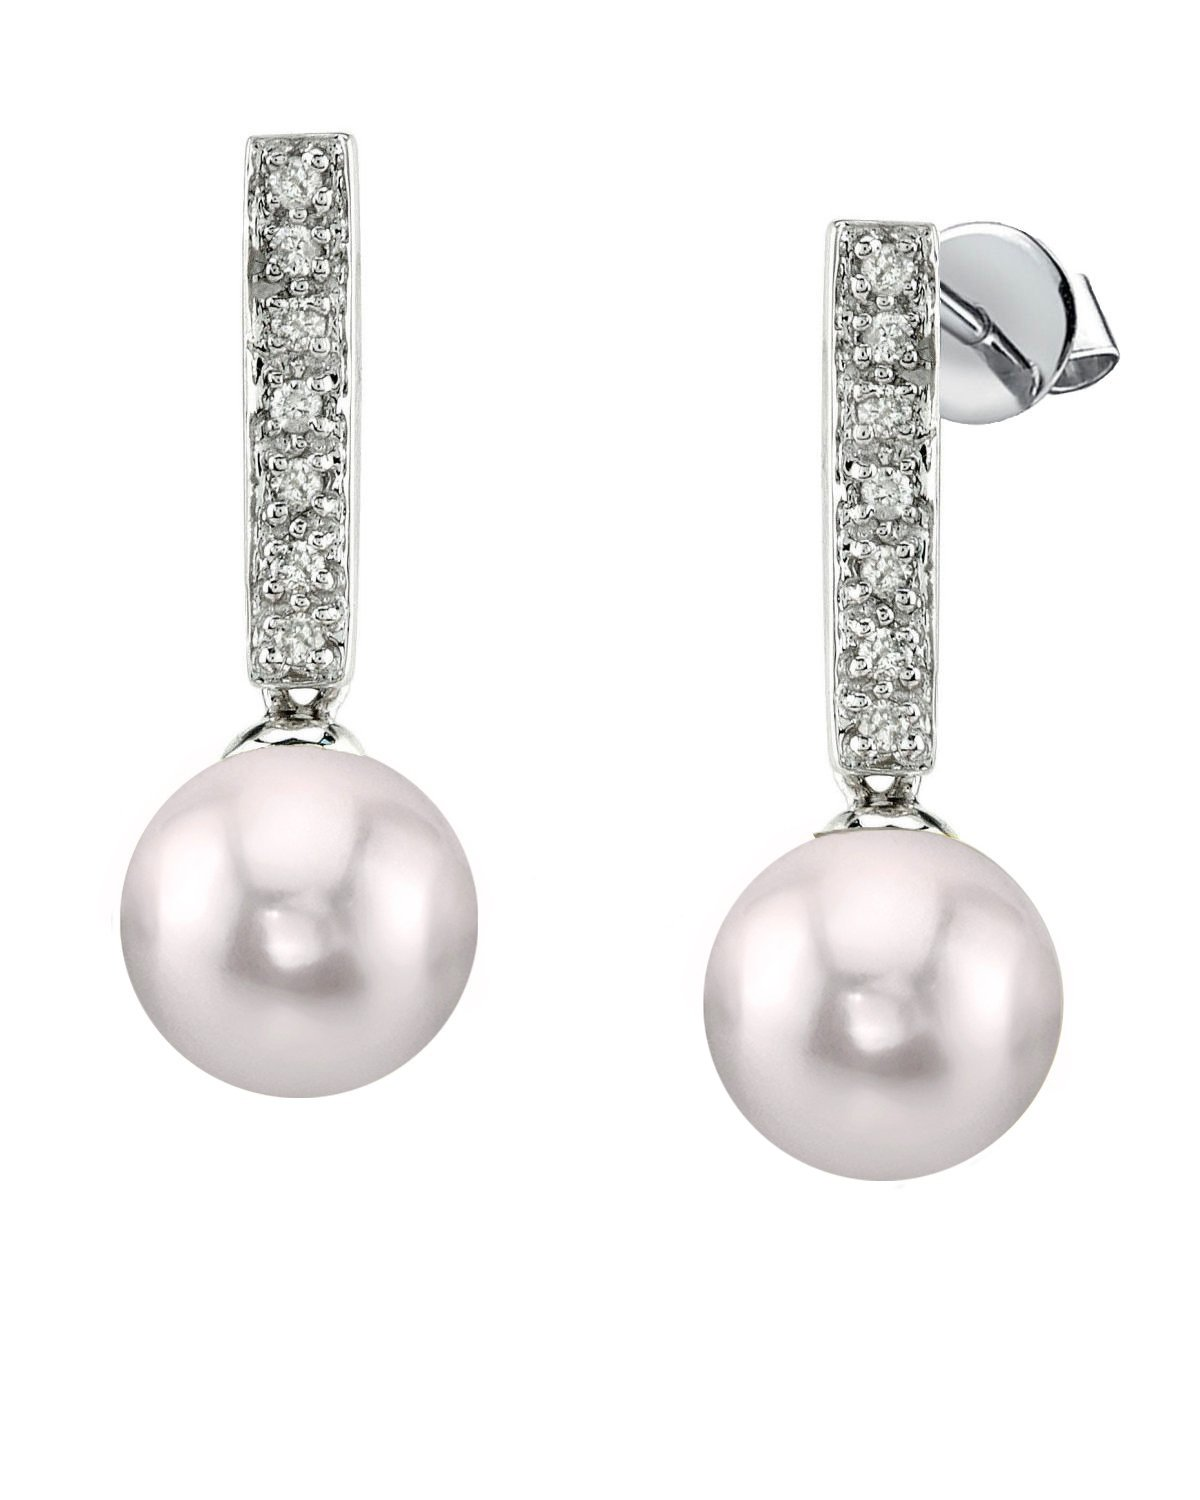 Akoya Pearl Dangling Diamond Earrings- Choose Your Pearl Color